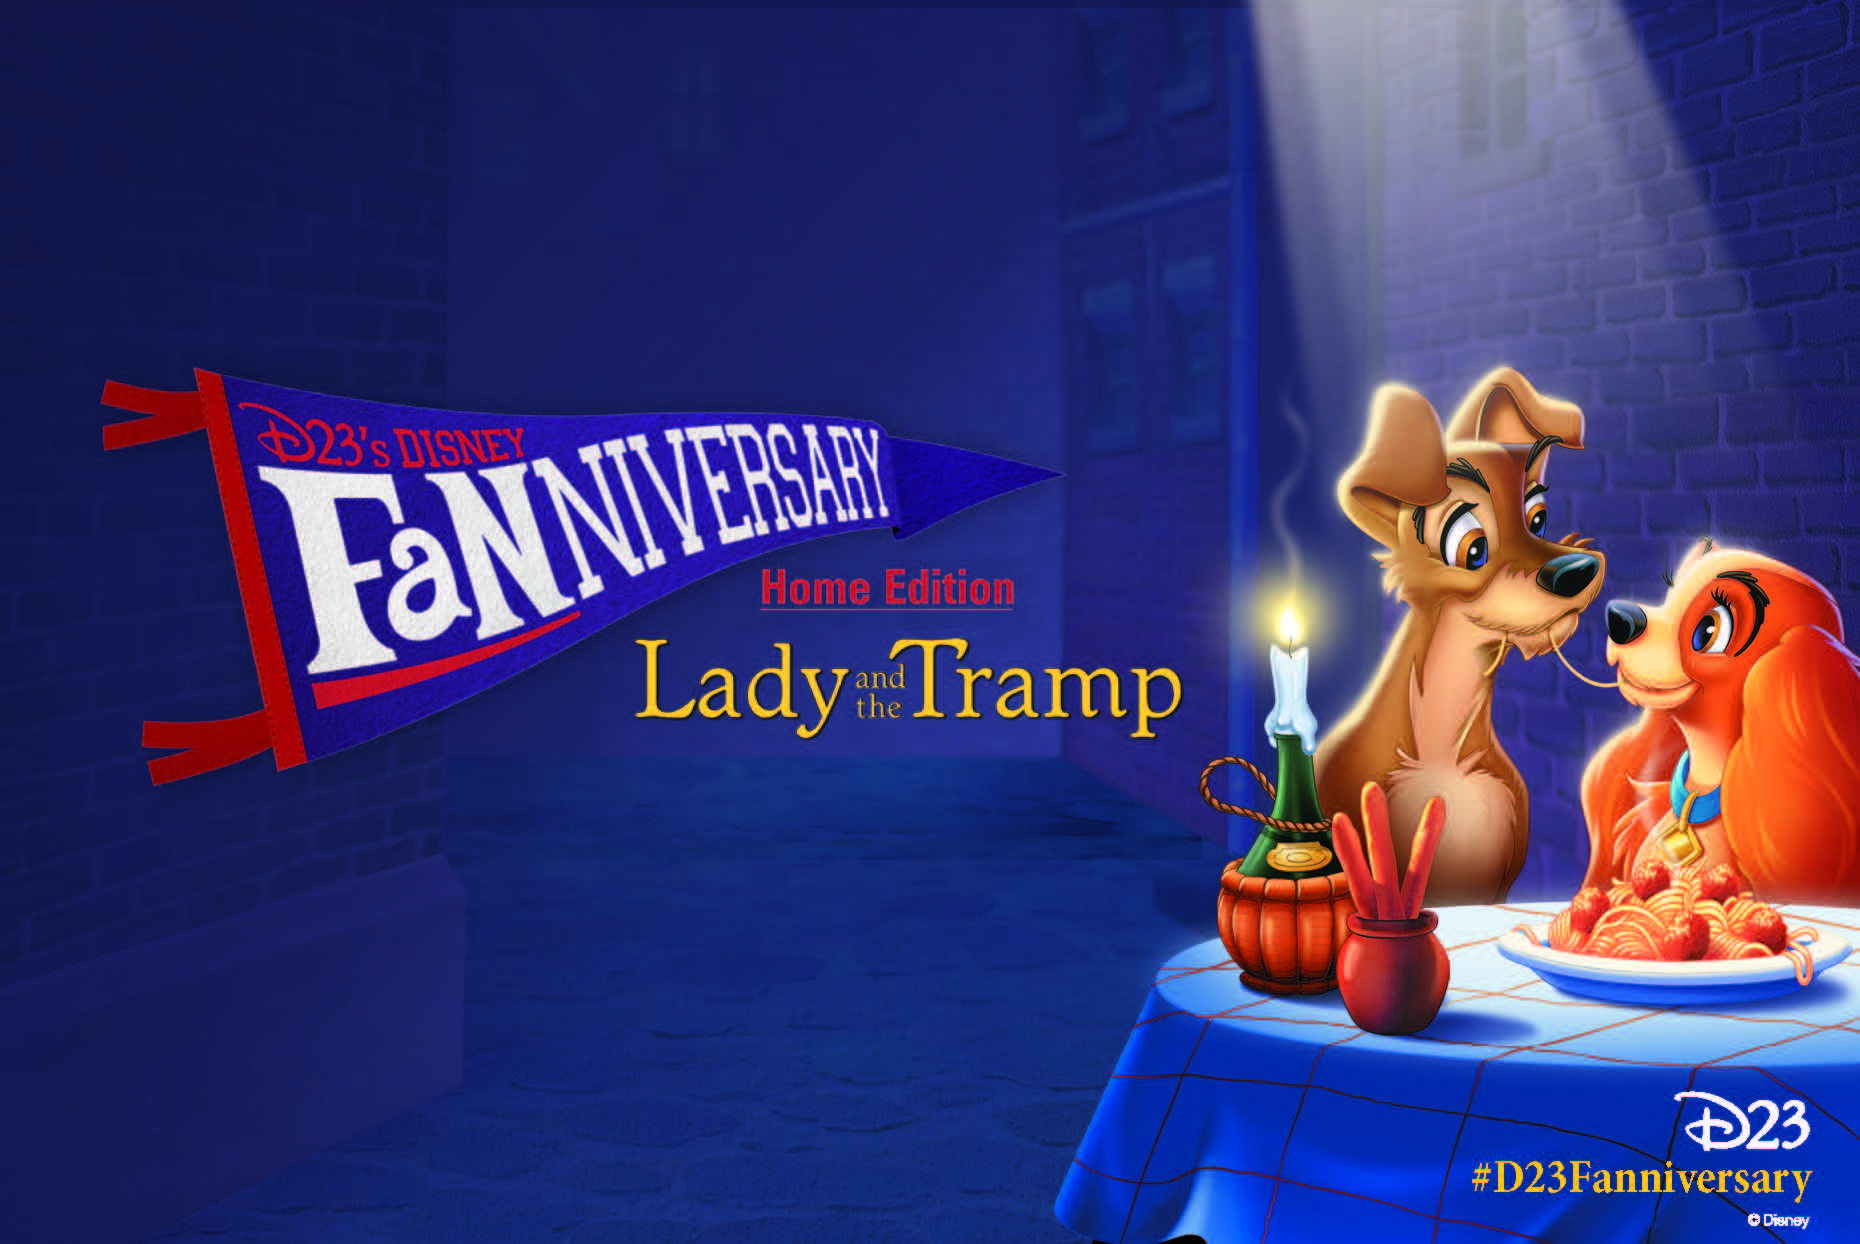 Disney D23 Fanniversary at Home Celebration Lady and the Tramp